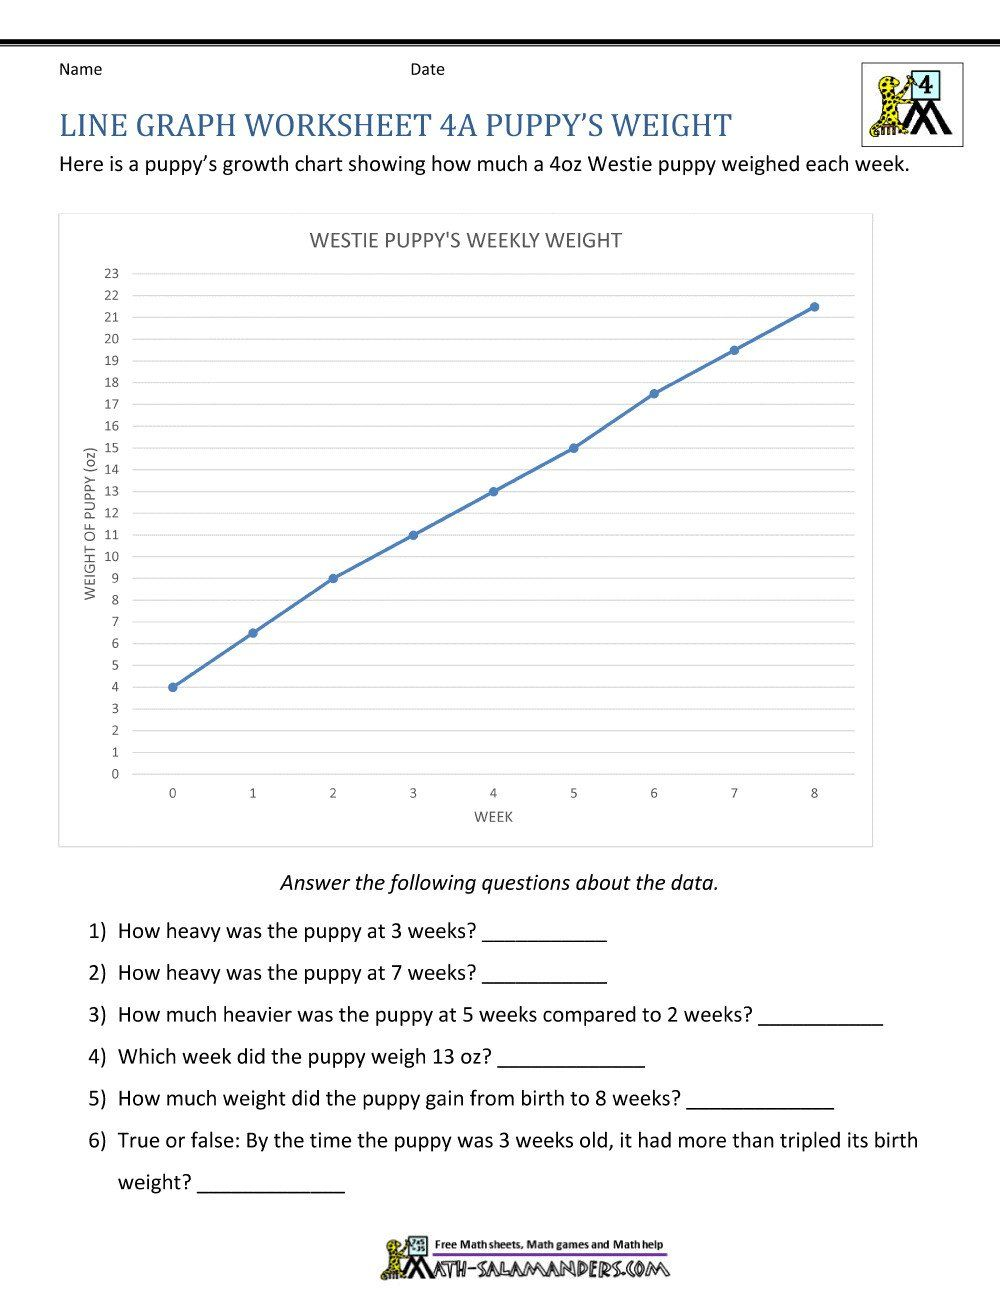 Interpreting Linear Graphs Worksheet New Graph Worksheet Graphing And Intro To Science Answers Line Graph Worksheets Line Plot Worksheets Reading Graphs